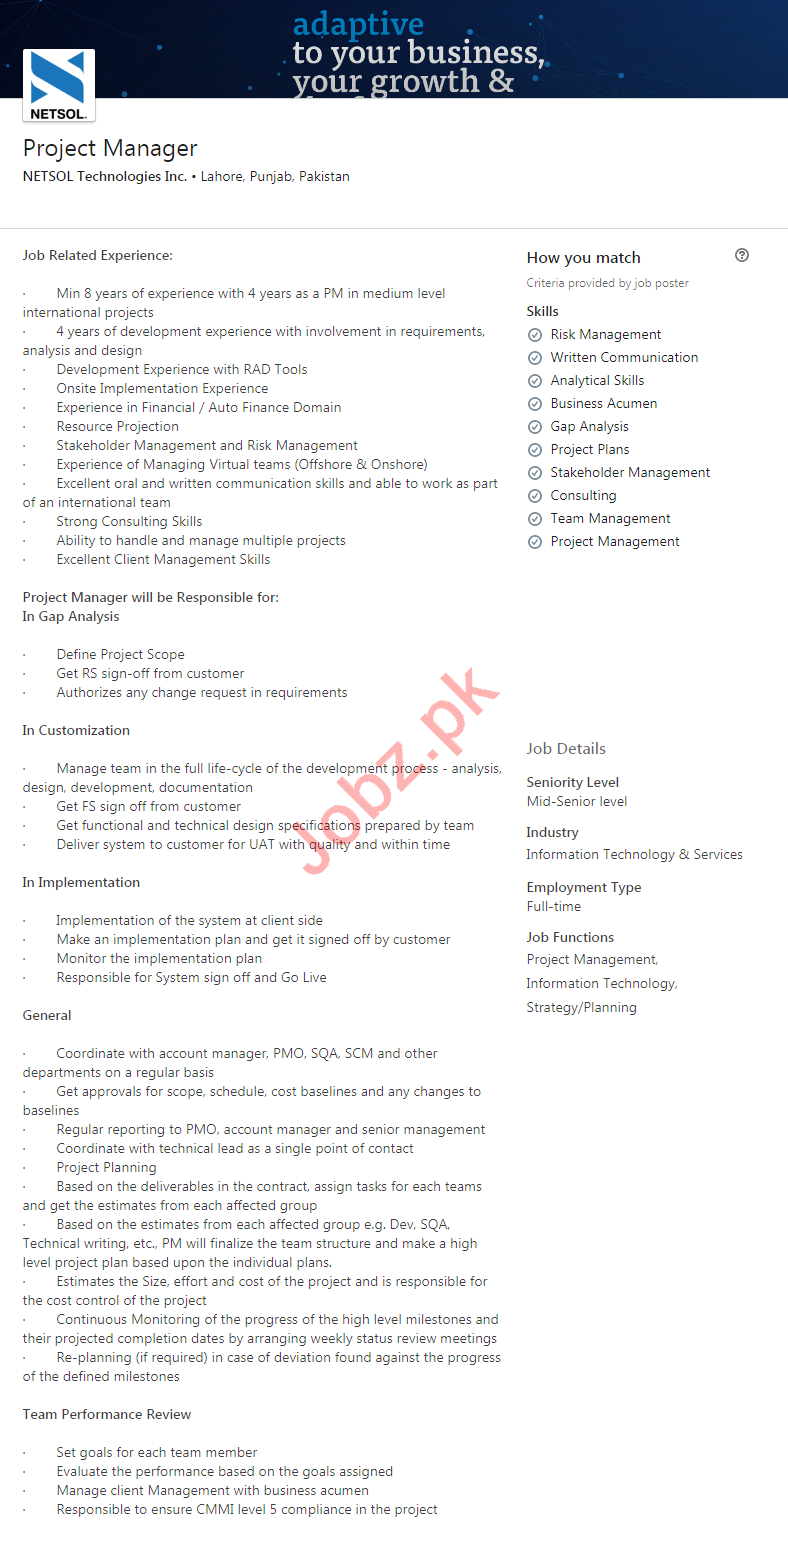 NETSOL Technologies Lahore Jobs 2020 for Project Manager